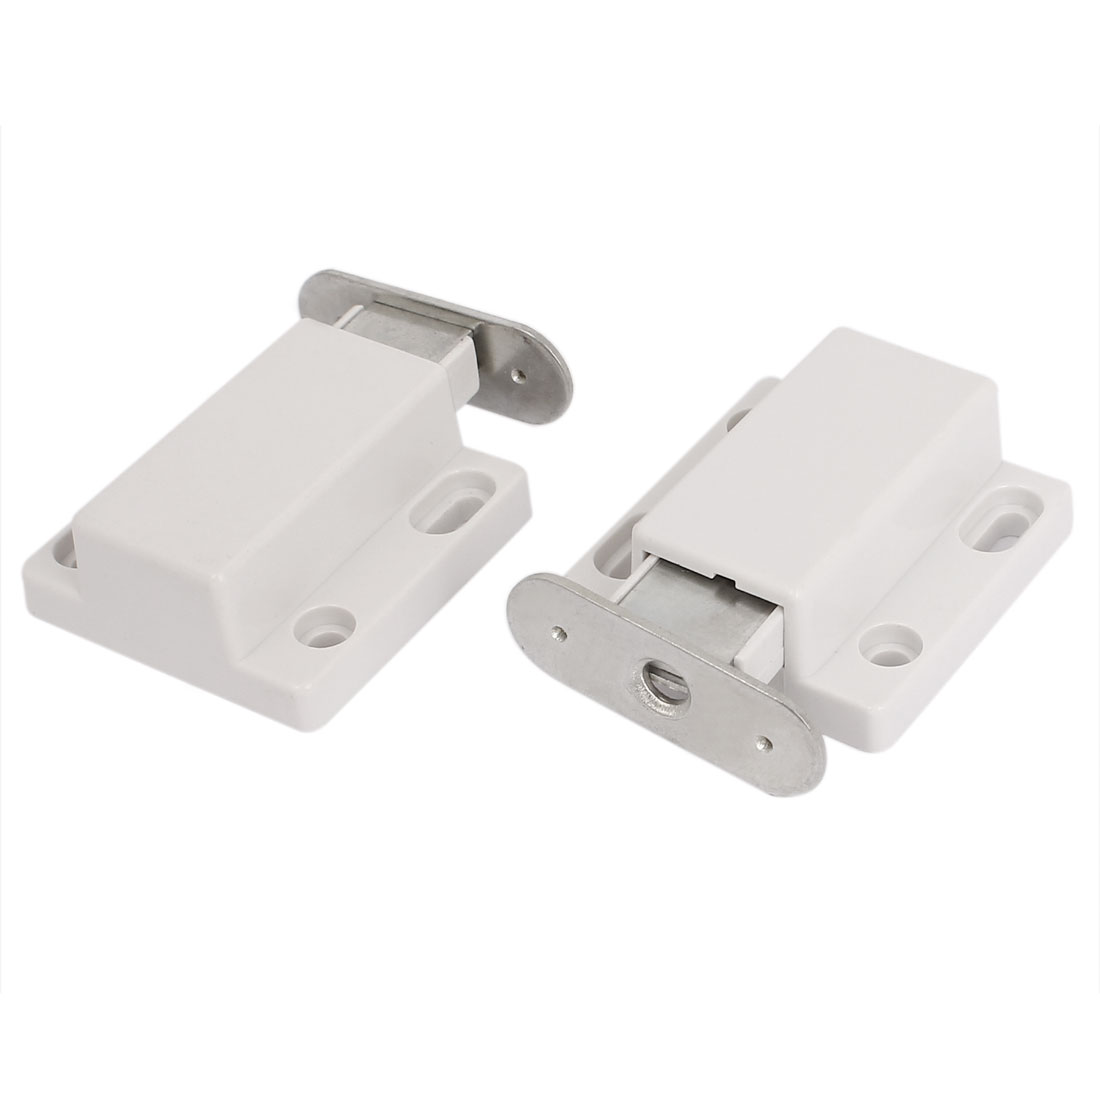 Furniture Cupboard Cabinet Door Magnetic Catch Latch Stopper 2 Pcs